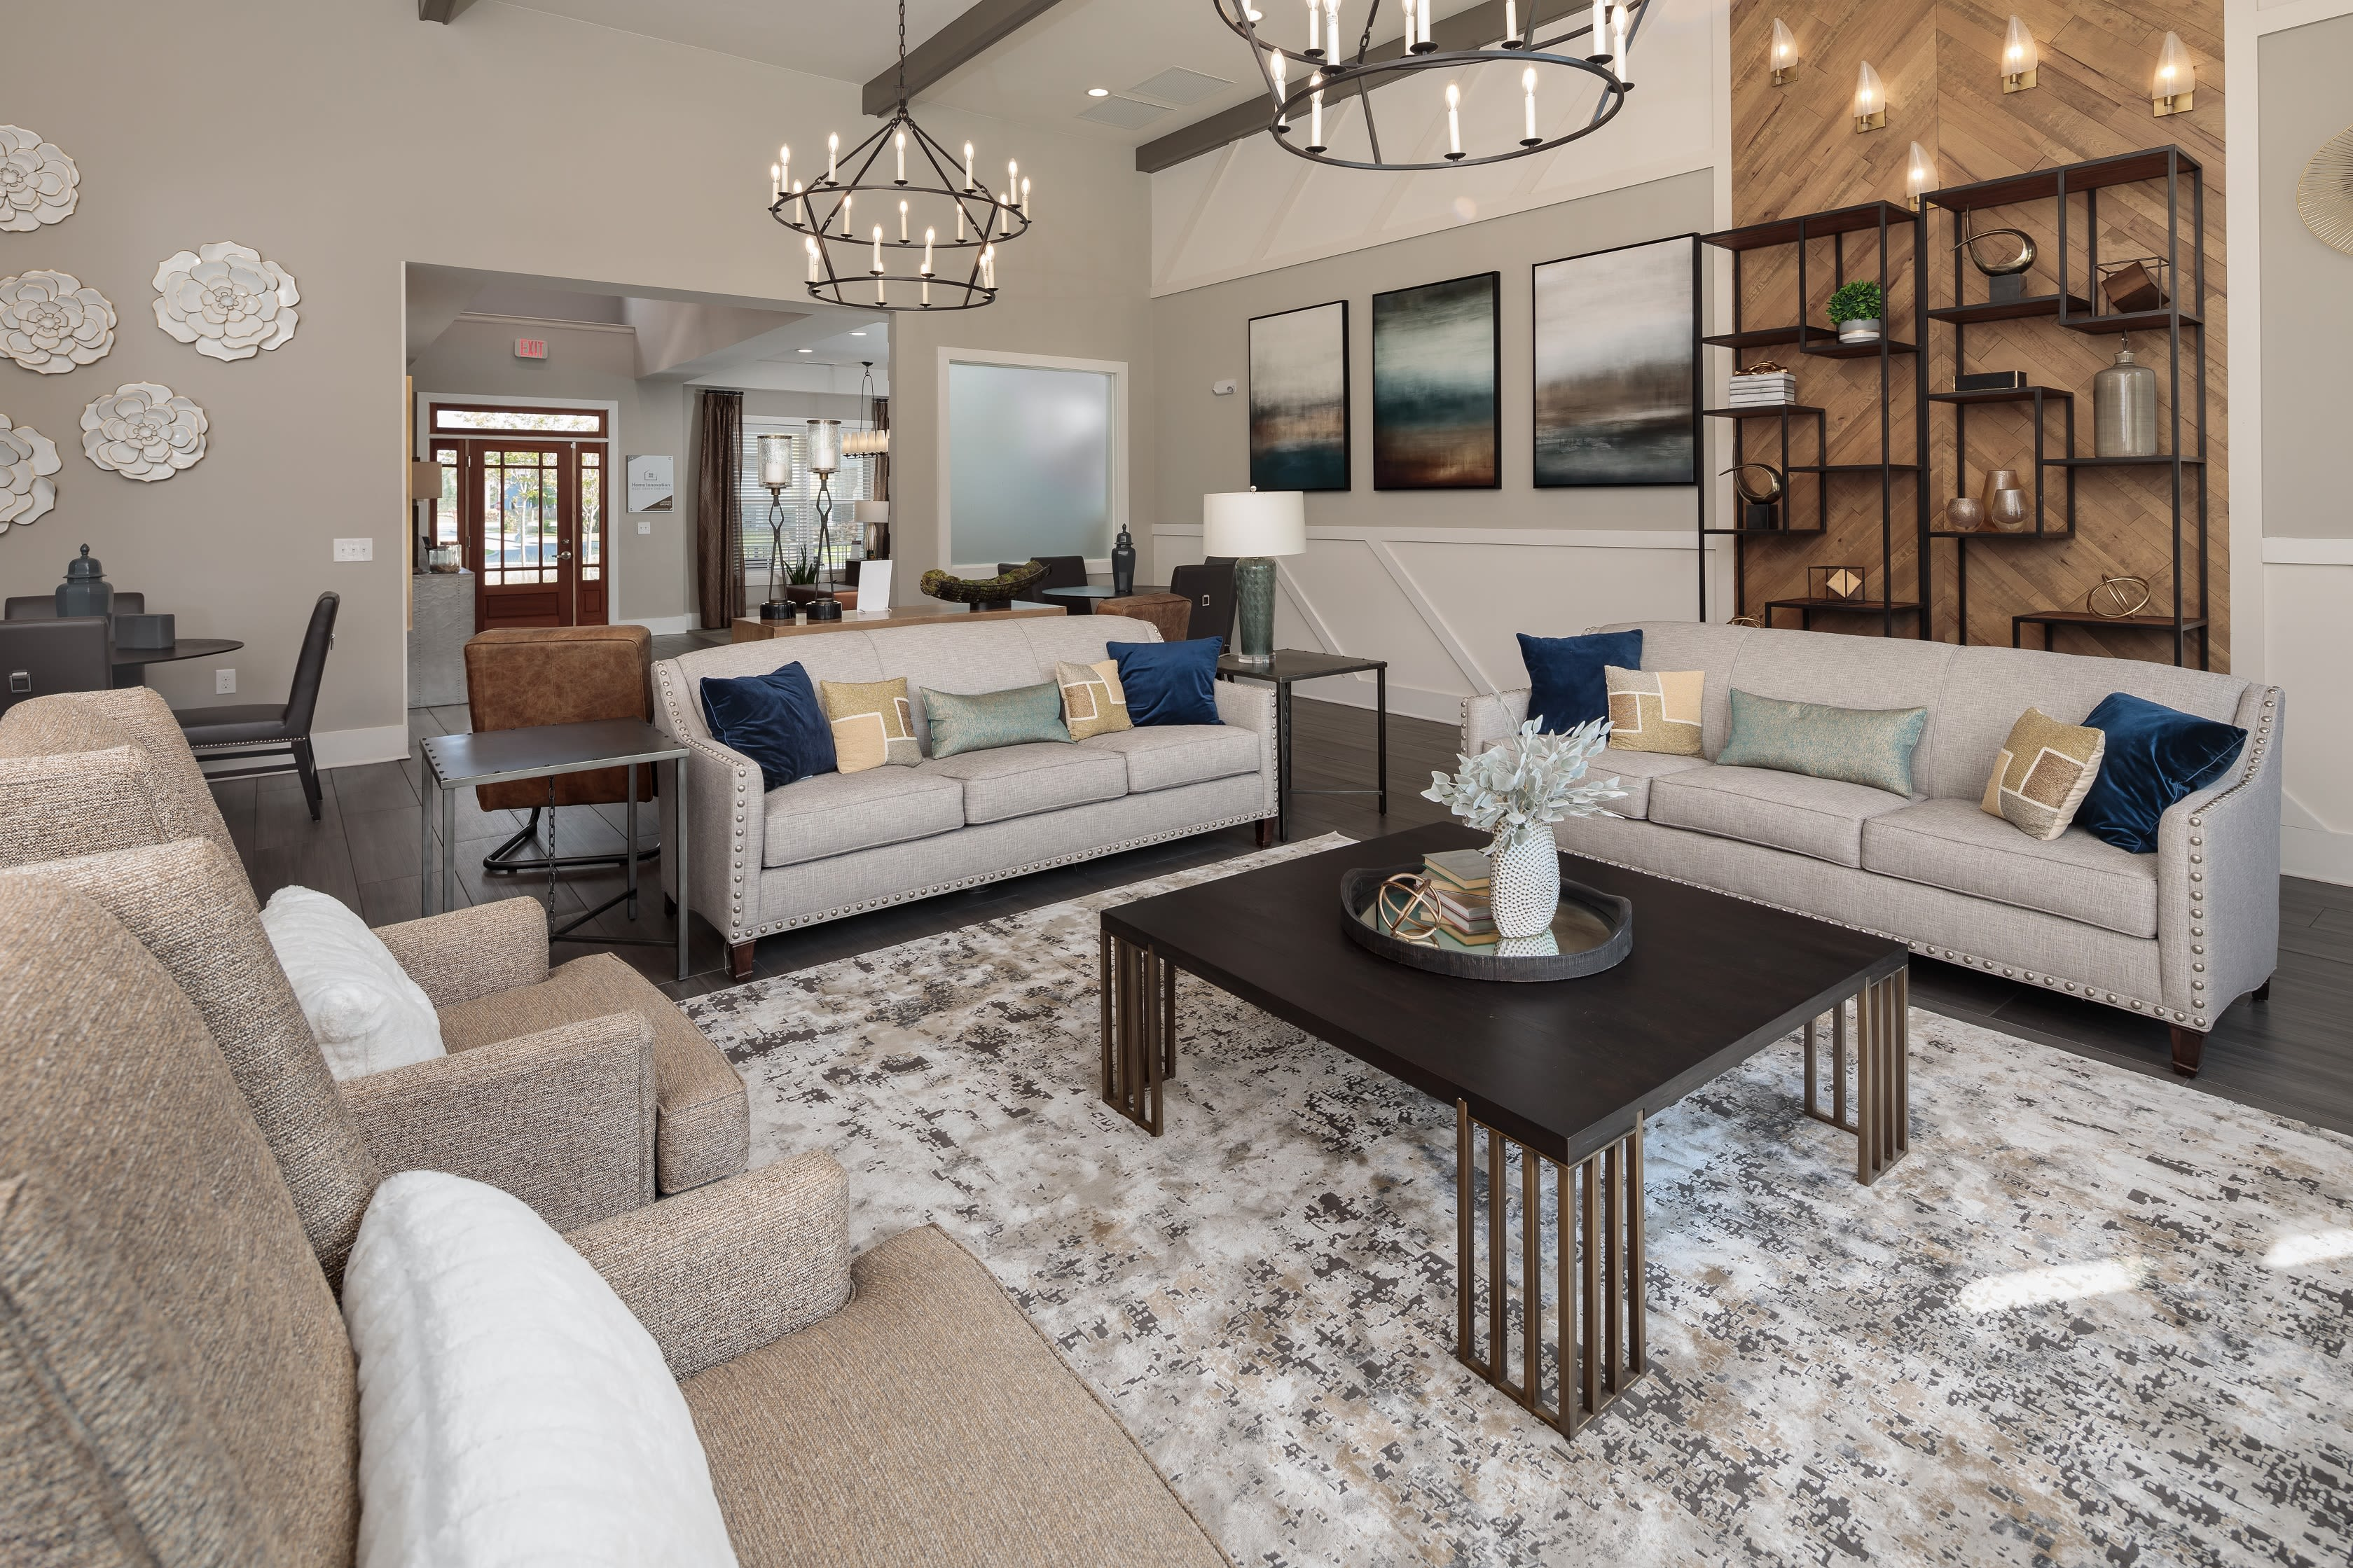 Full living room lounge for residents at The Isaac in Summerville, South Carolina